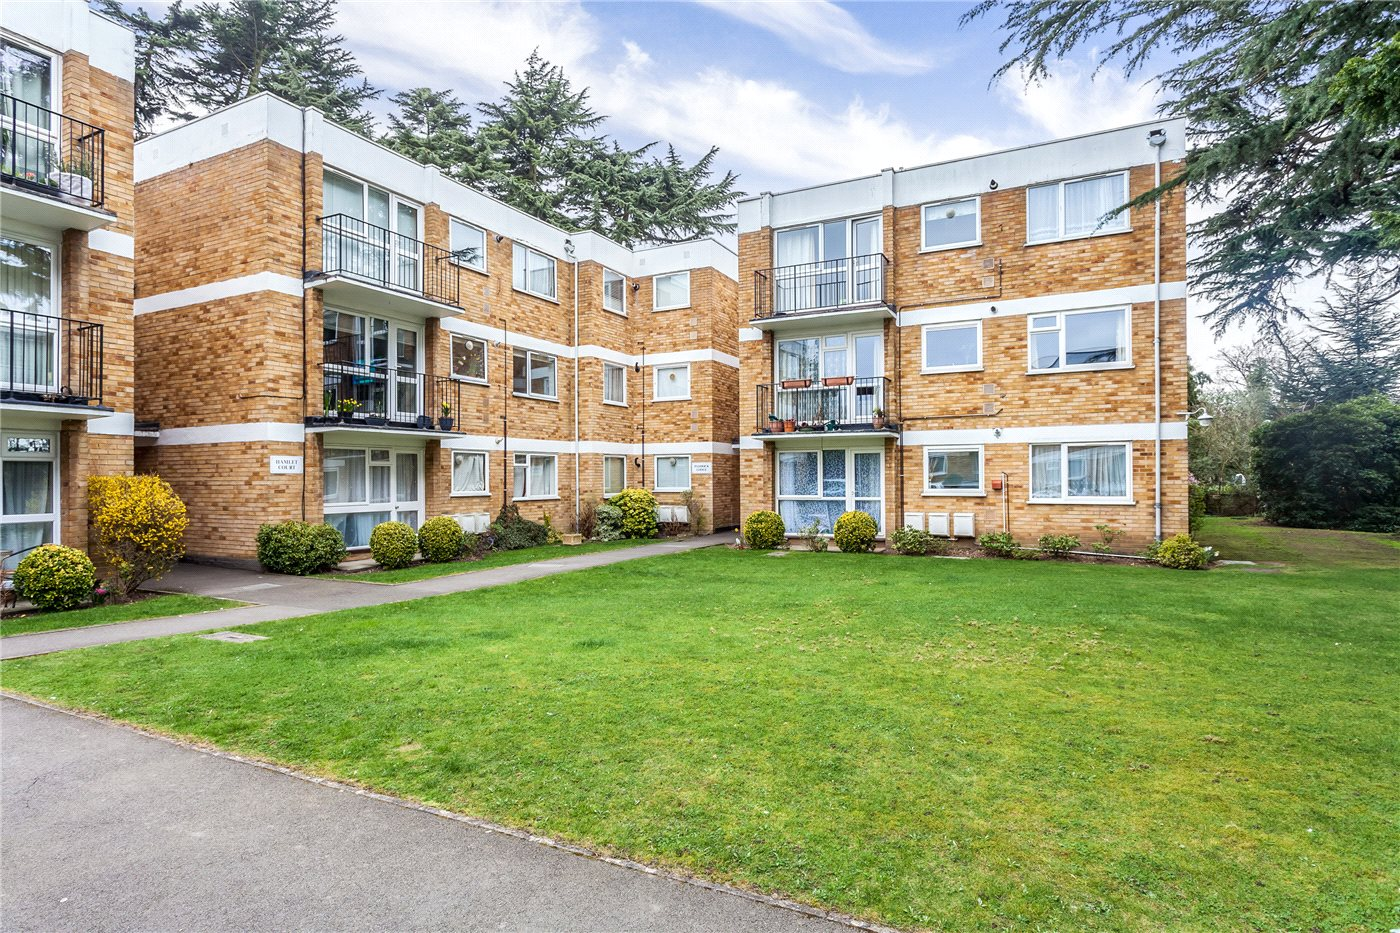 2 Bedrooms Flat for sale in Paddock Lodge, 21 Village Road, Enfield, Hertfordshire, EN1